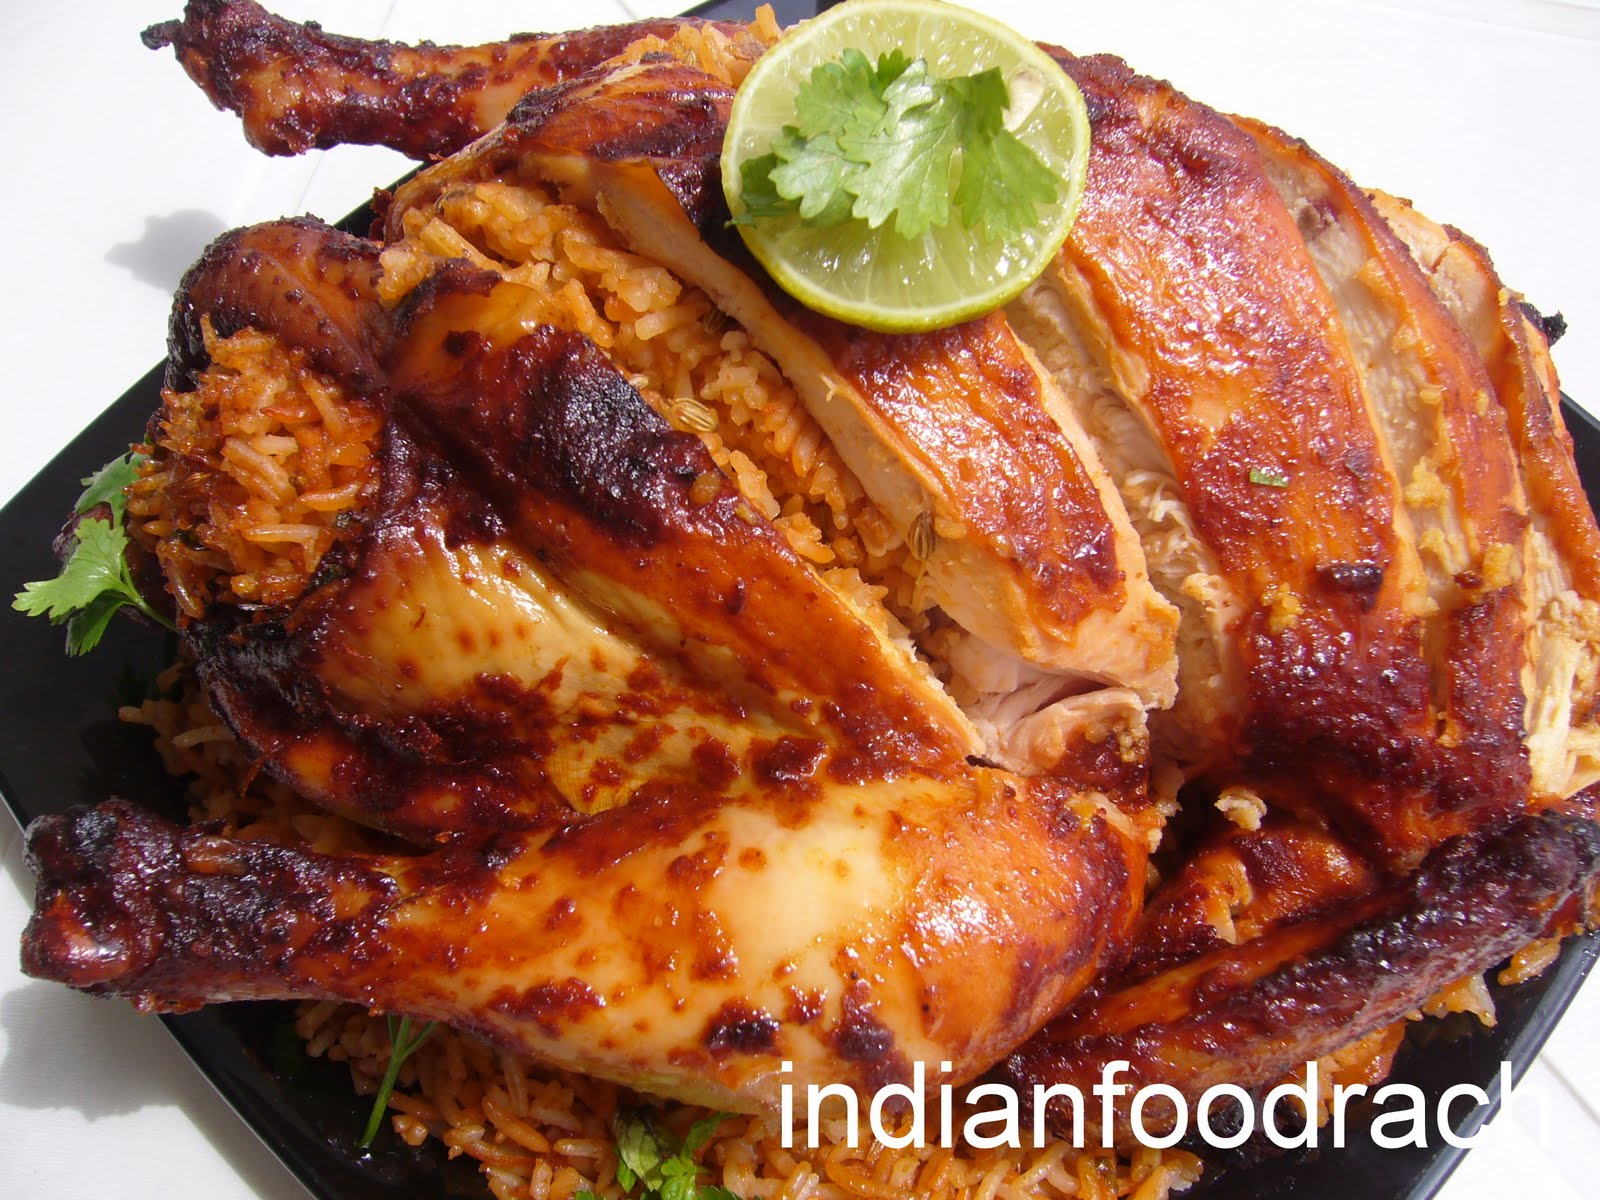 INDIAN FOOD: Roasted chicken stuffed with Khushka/kuska/khusqa ...